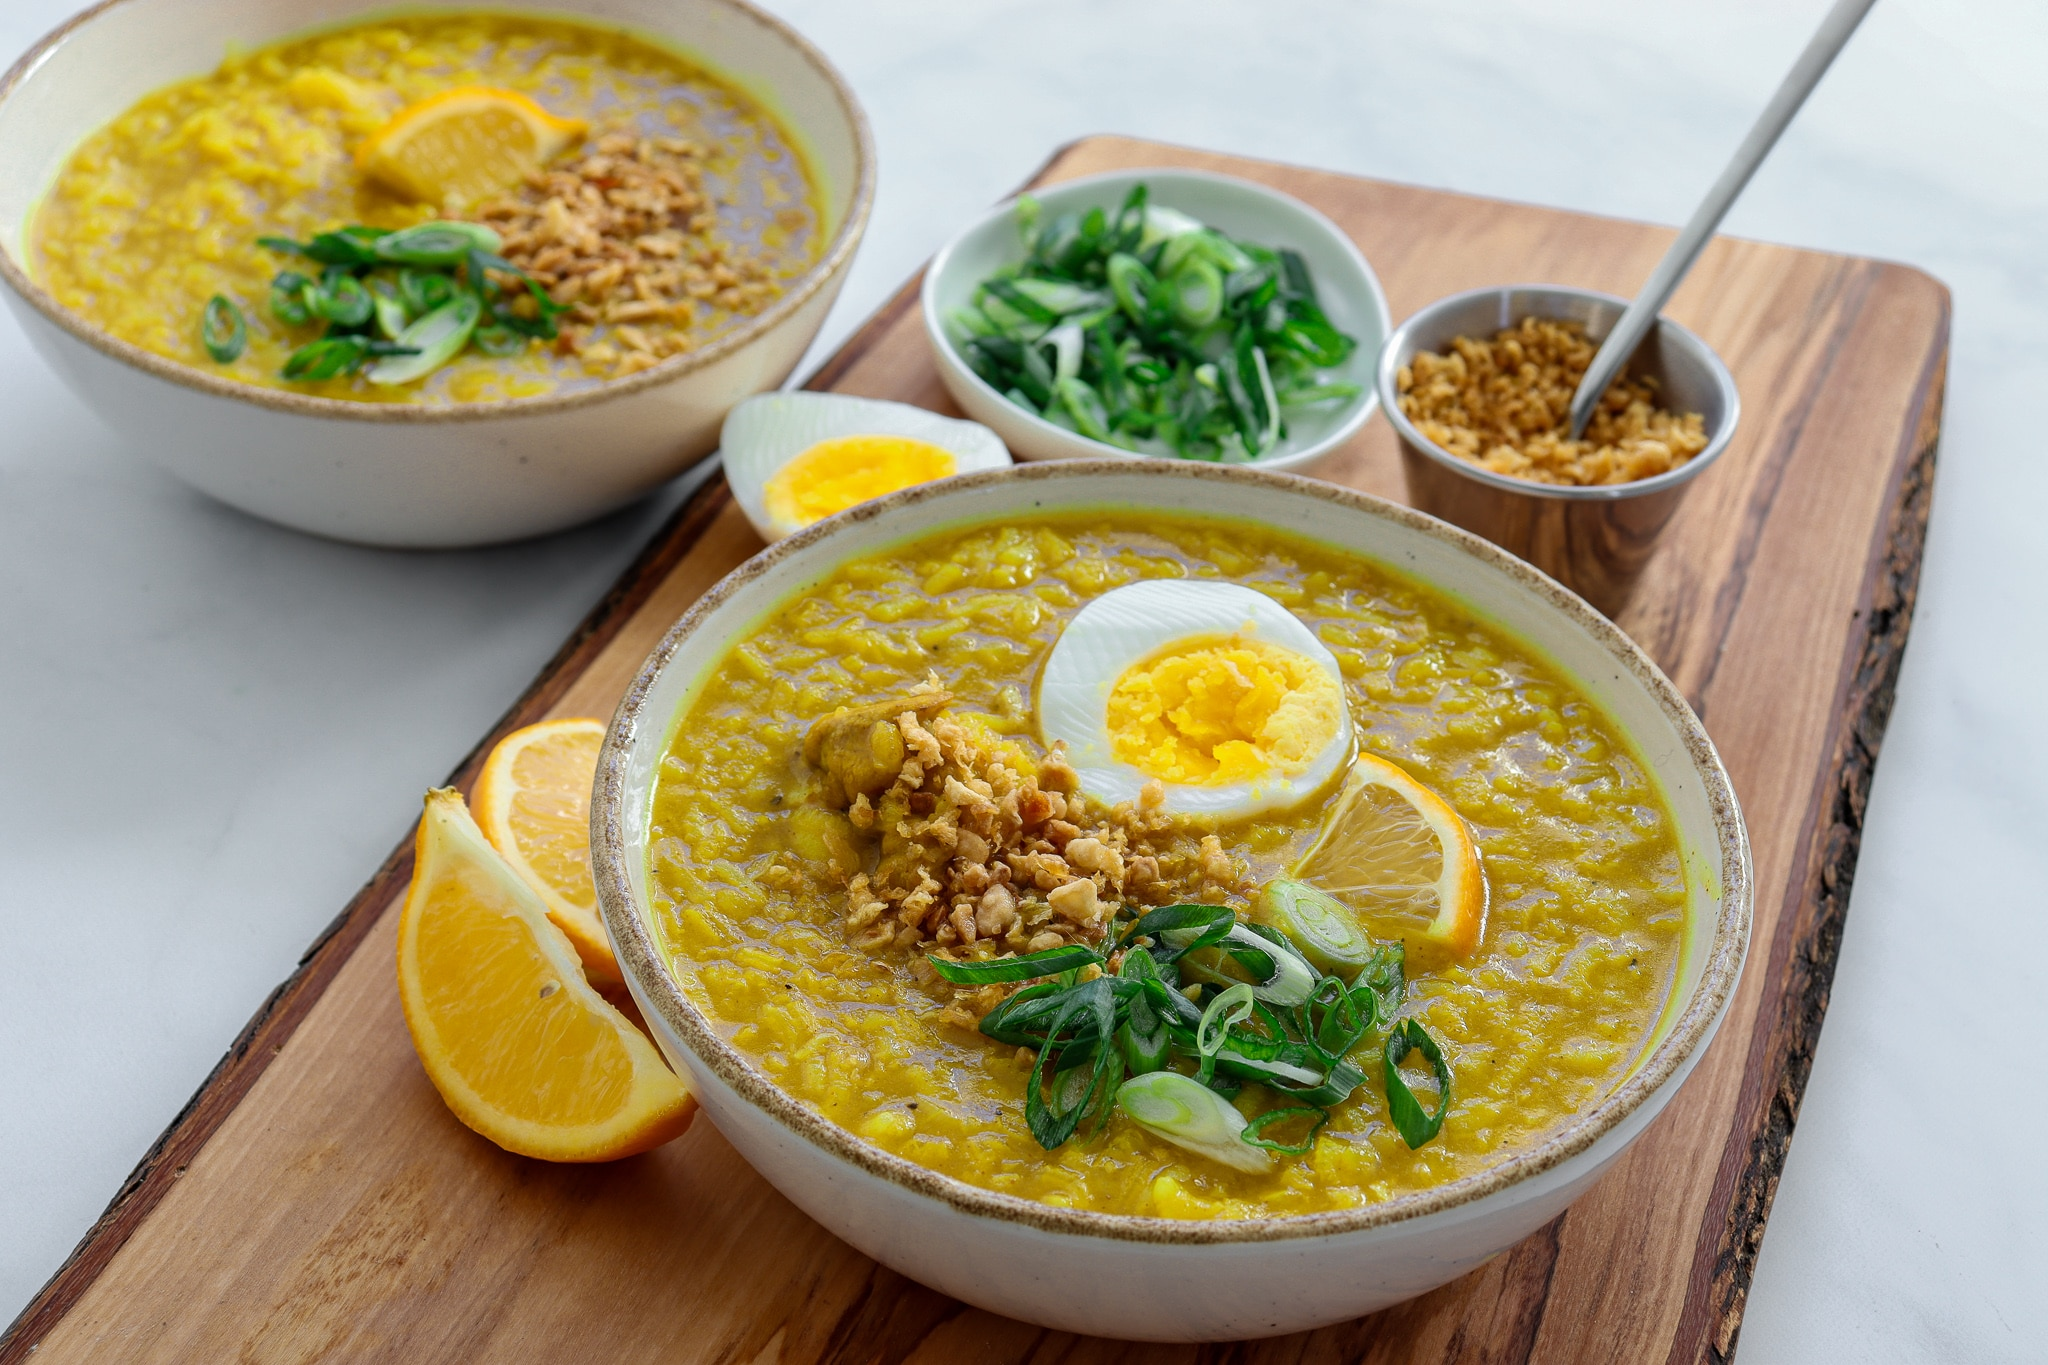 2 bowls loaded with a rich Arroz Caldo recipe - topped with a hard boiled egg, green onion, crispy fried garlic and a lemon wedge.